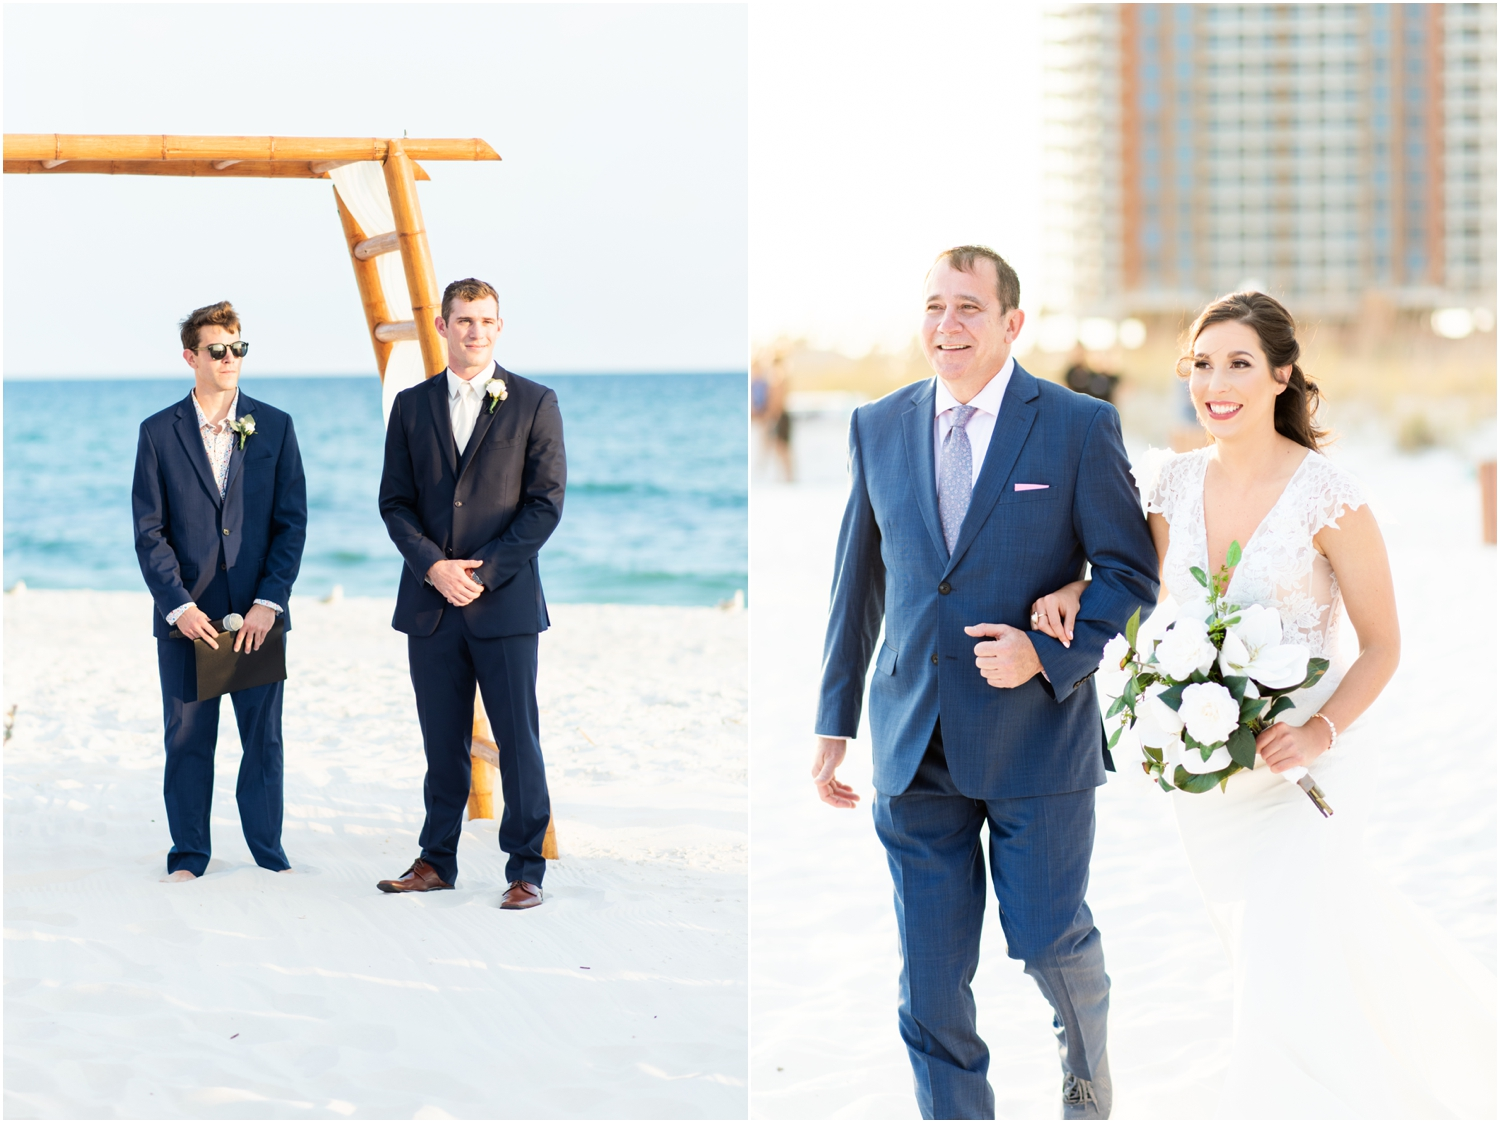 Portofino Island Resort Pensacola Beach Wedding Photographer ceremony first look